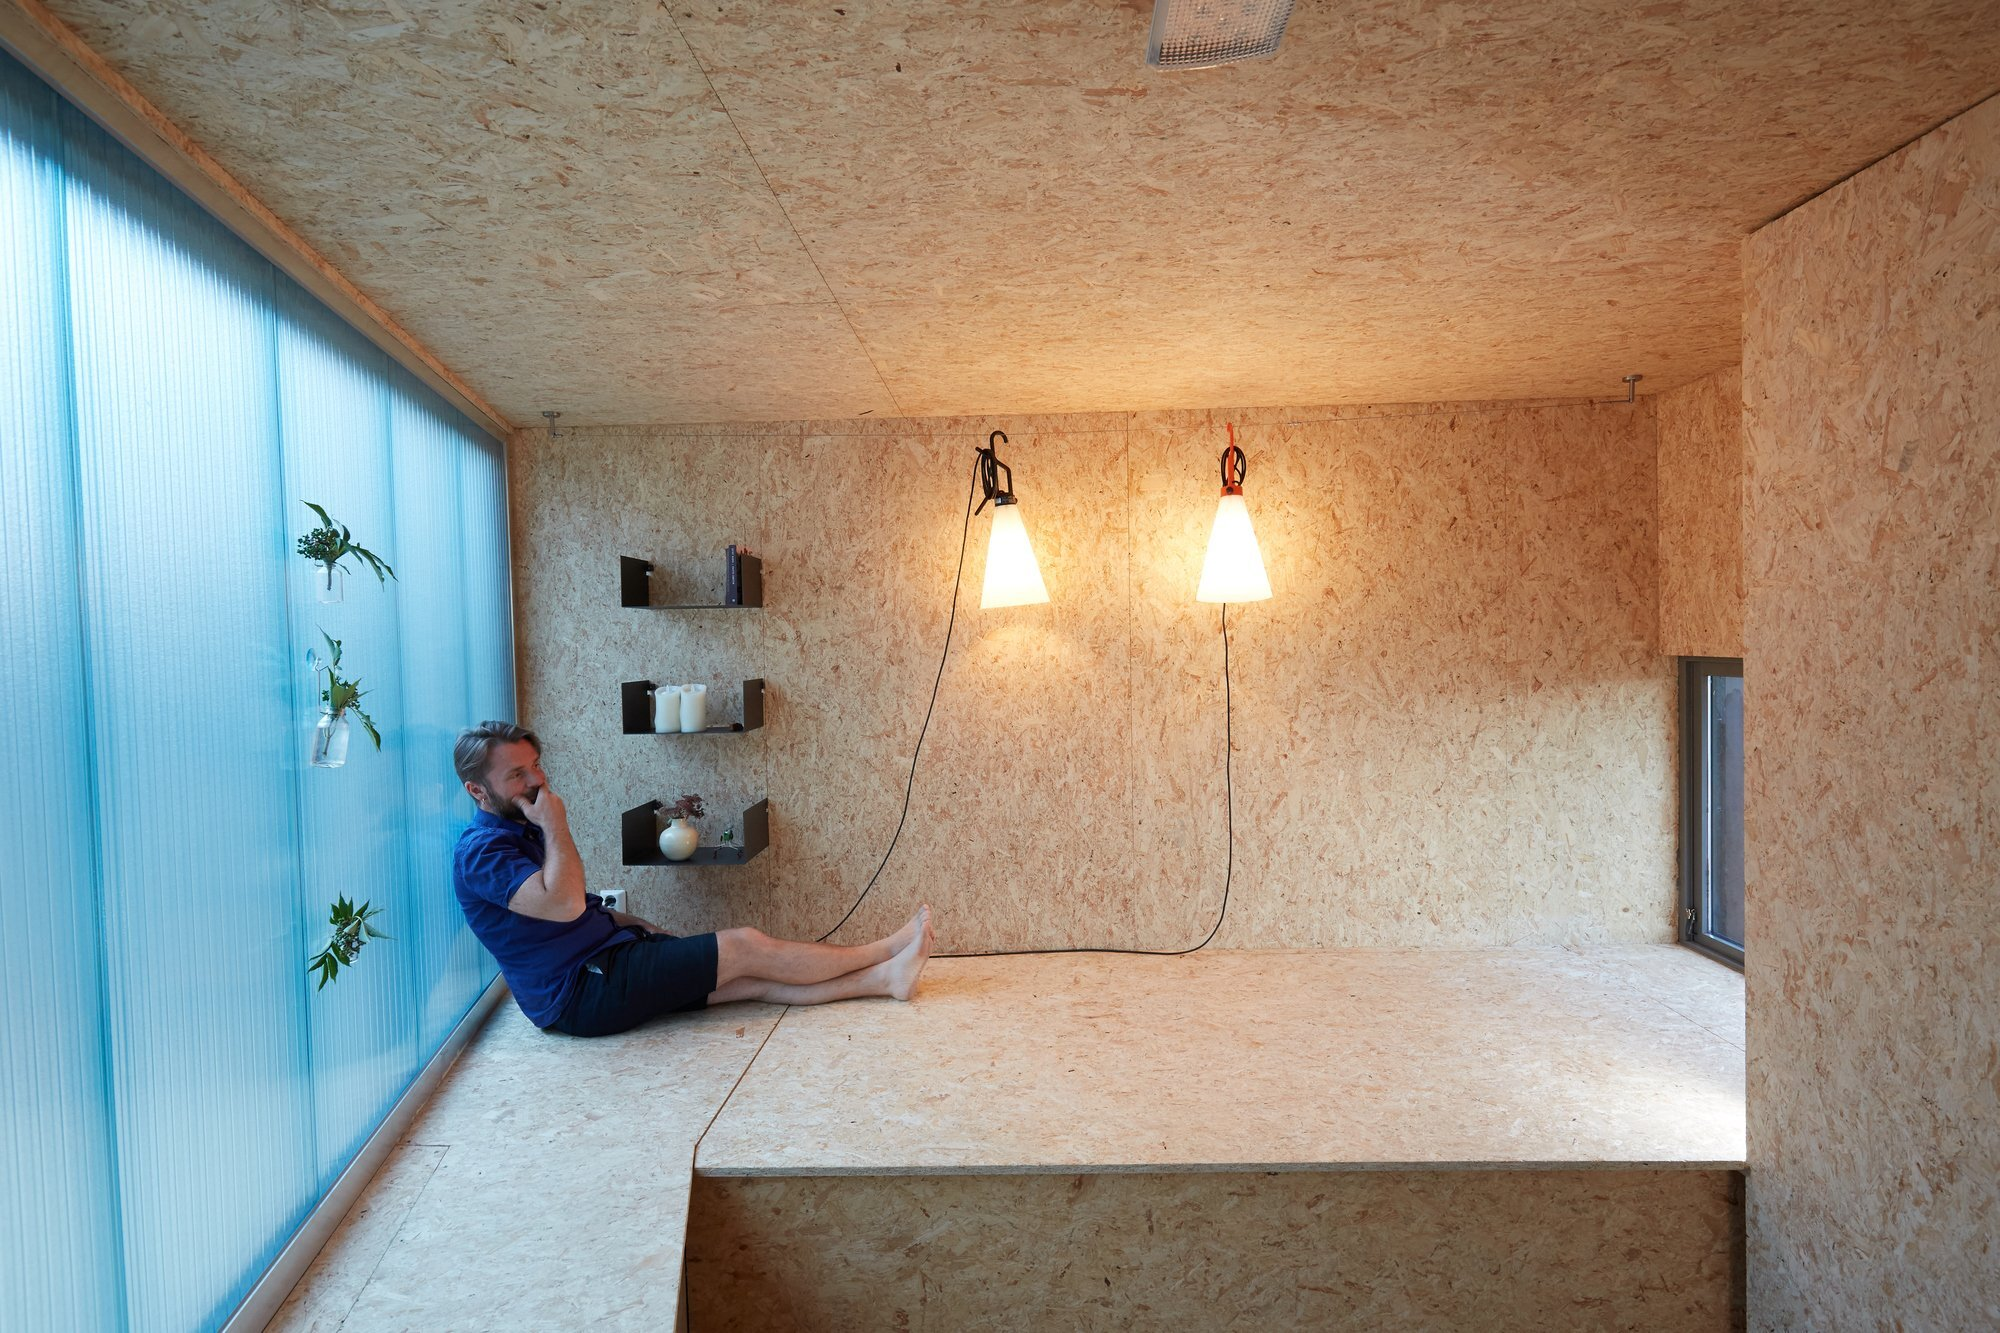 Outdoor Light Studio - NATAAS - Norway - Interior - Humble Homes